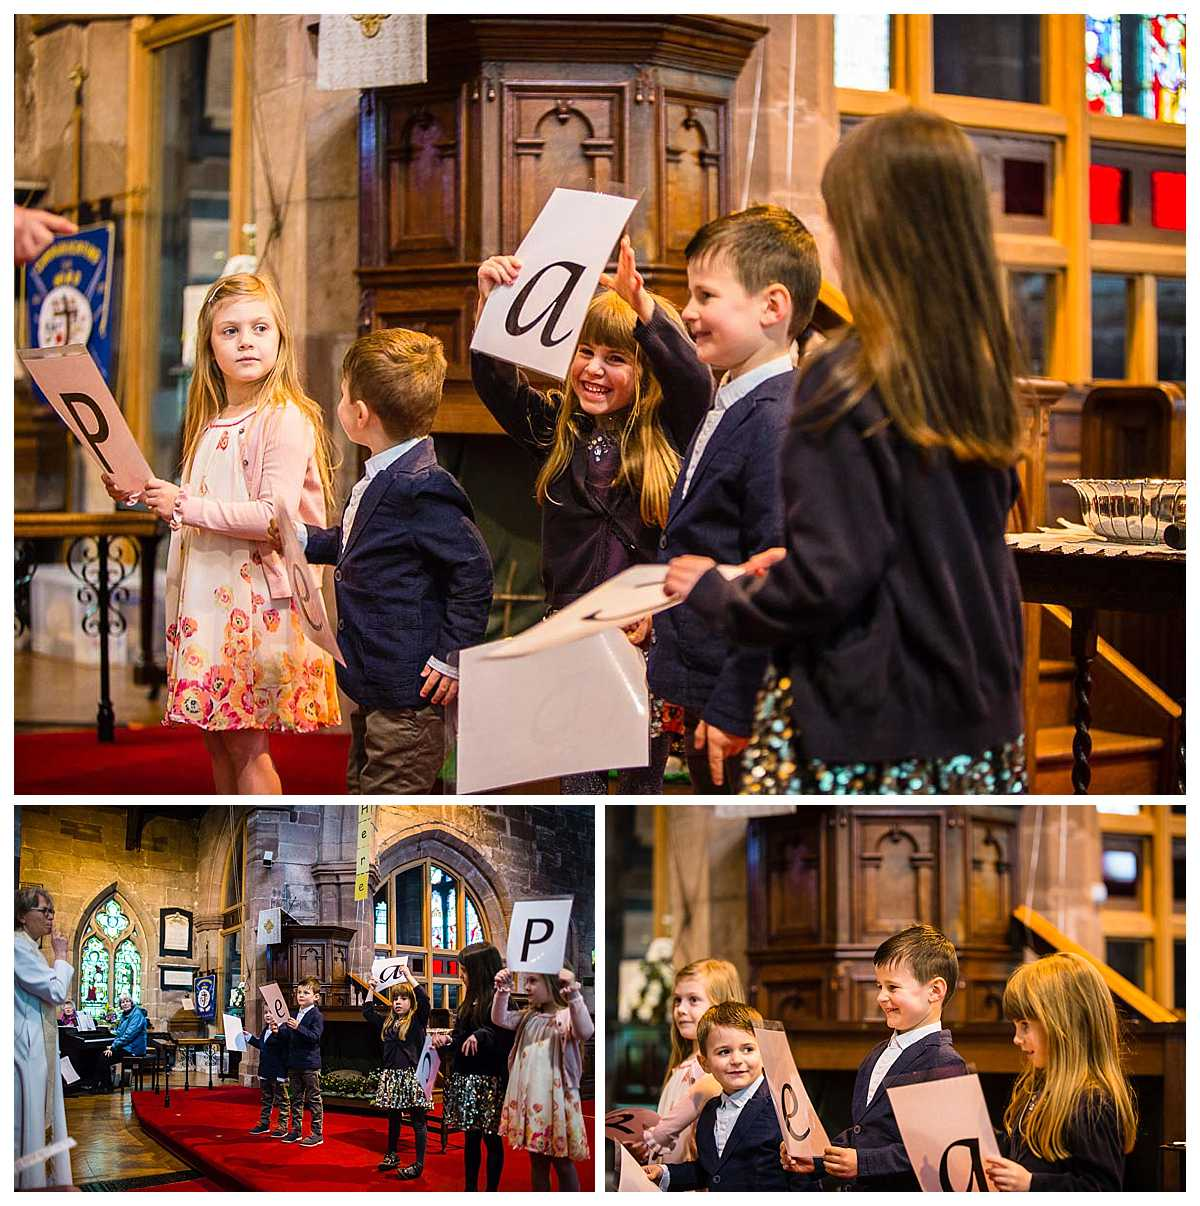 children holding up letters in church as the vicar tells a tale relating to the word peace